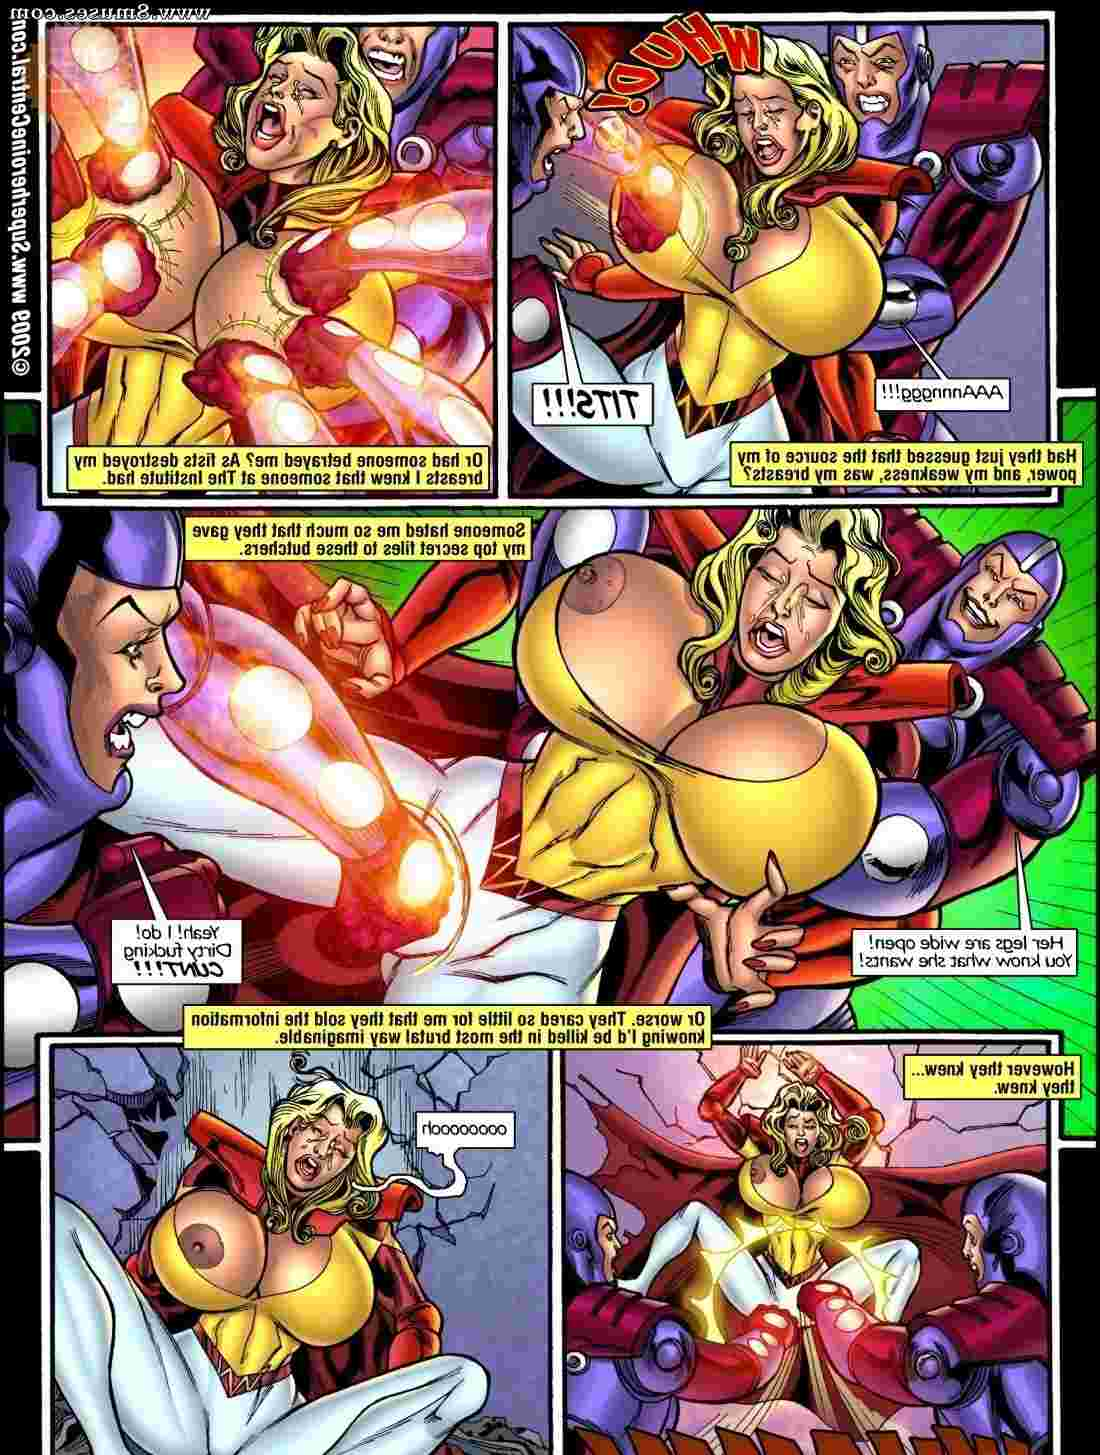 SuperHeroineComixxx/Mighty-cow Mighty_cow__8muses_-_Sex_and_Porn_Comics_46.jpg